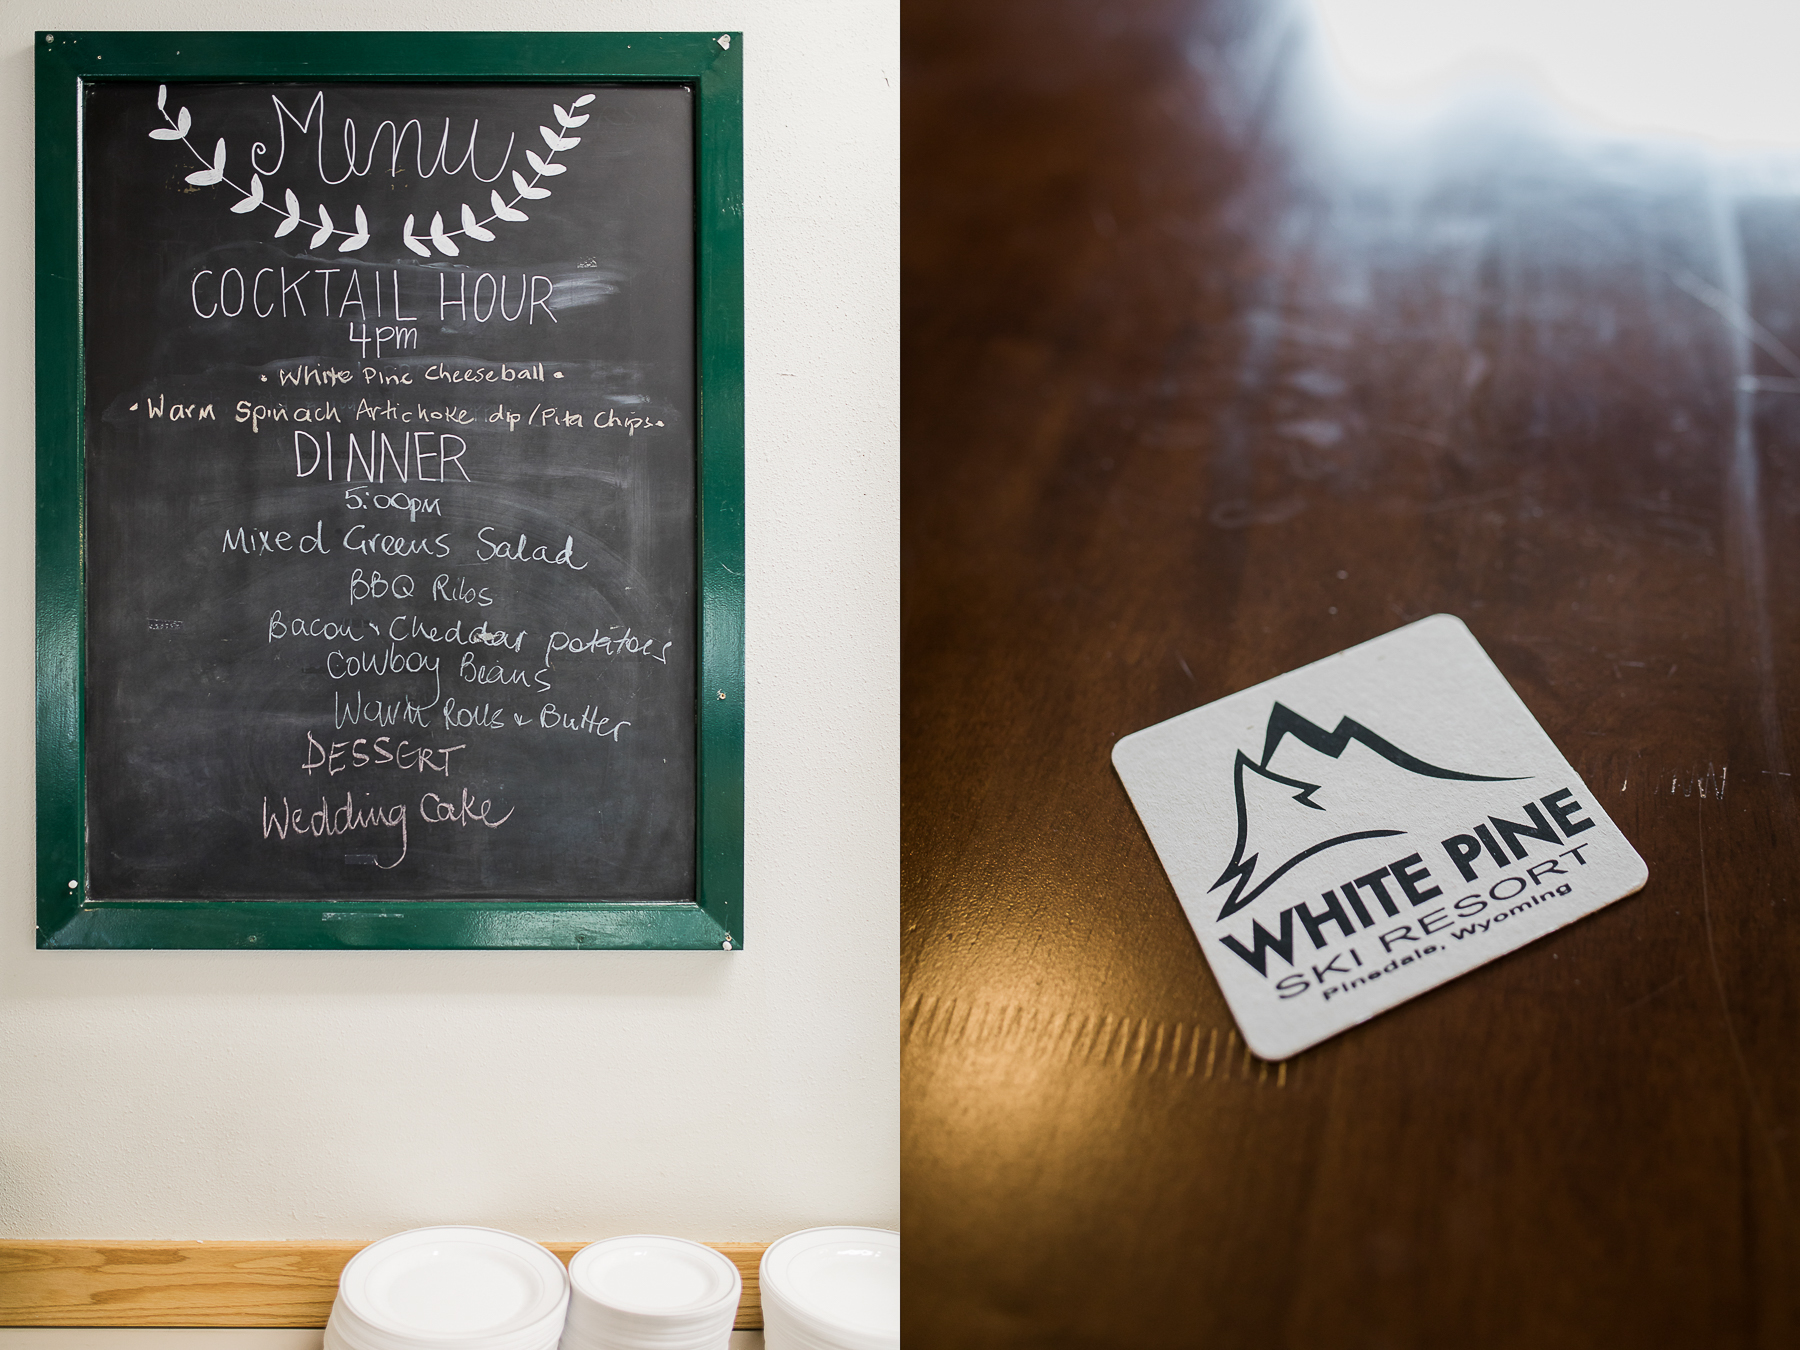 Wedding at White Pine Ski Area in Pinedale, Wyoming by Megan Lee Photography